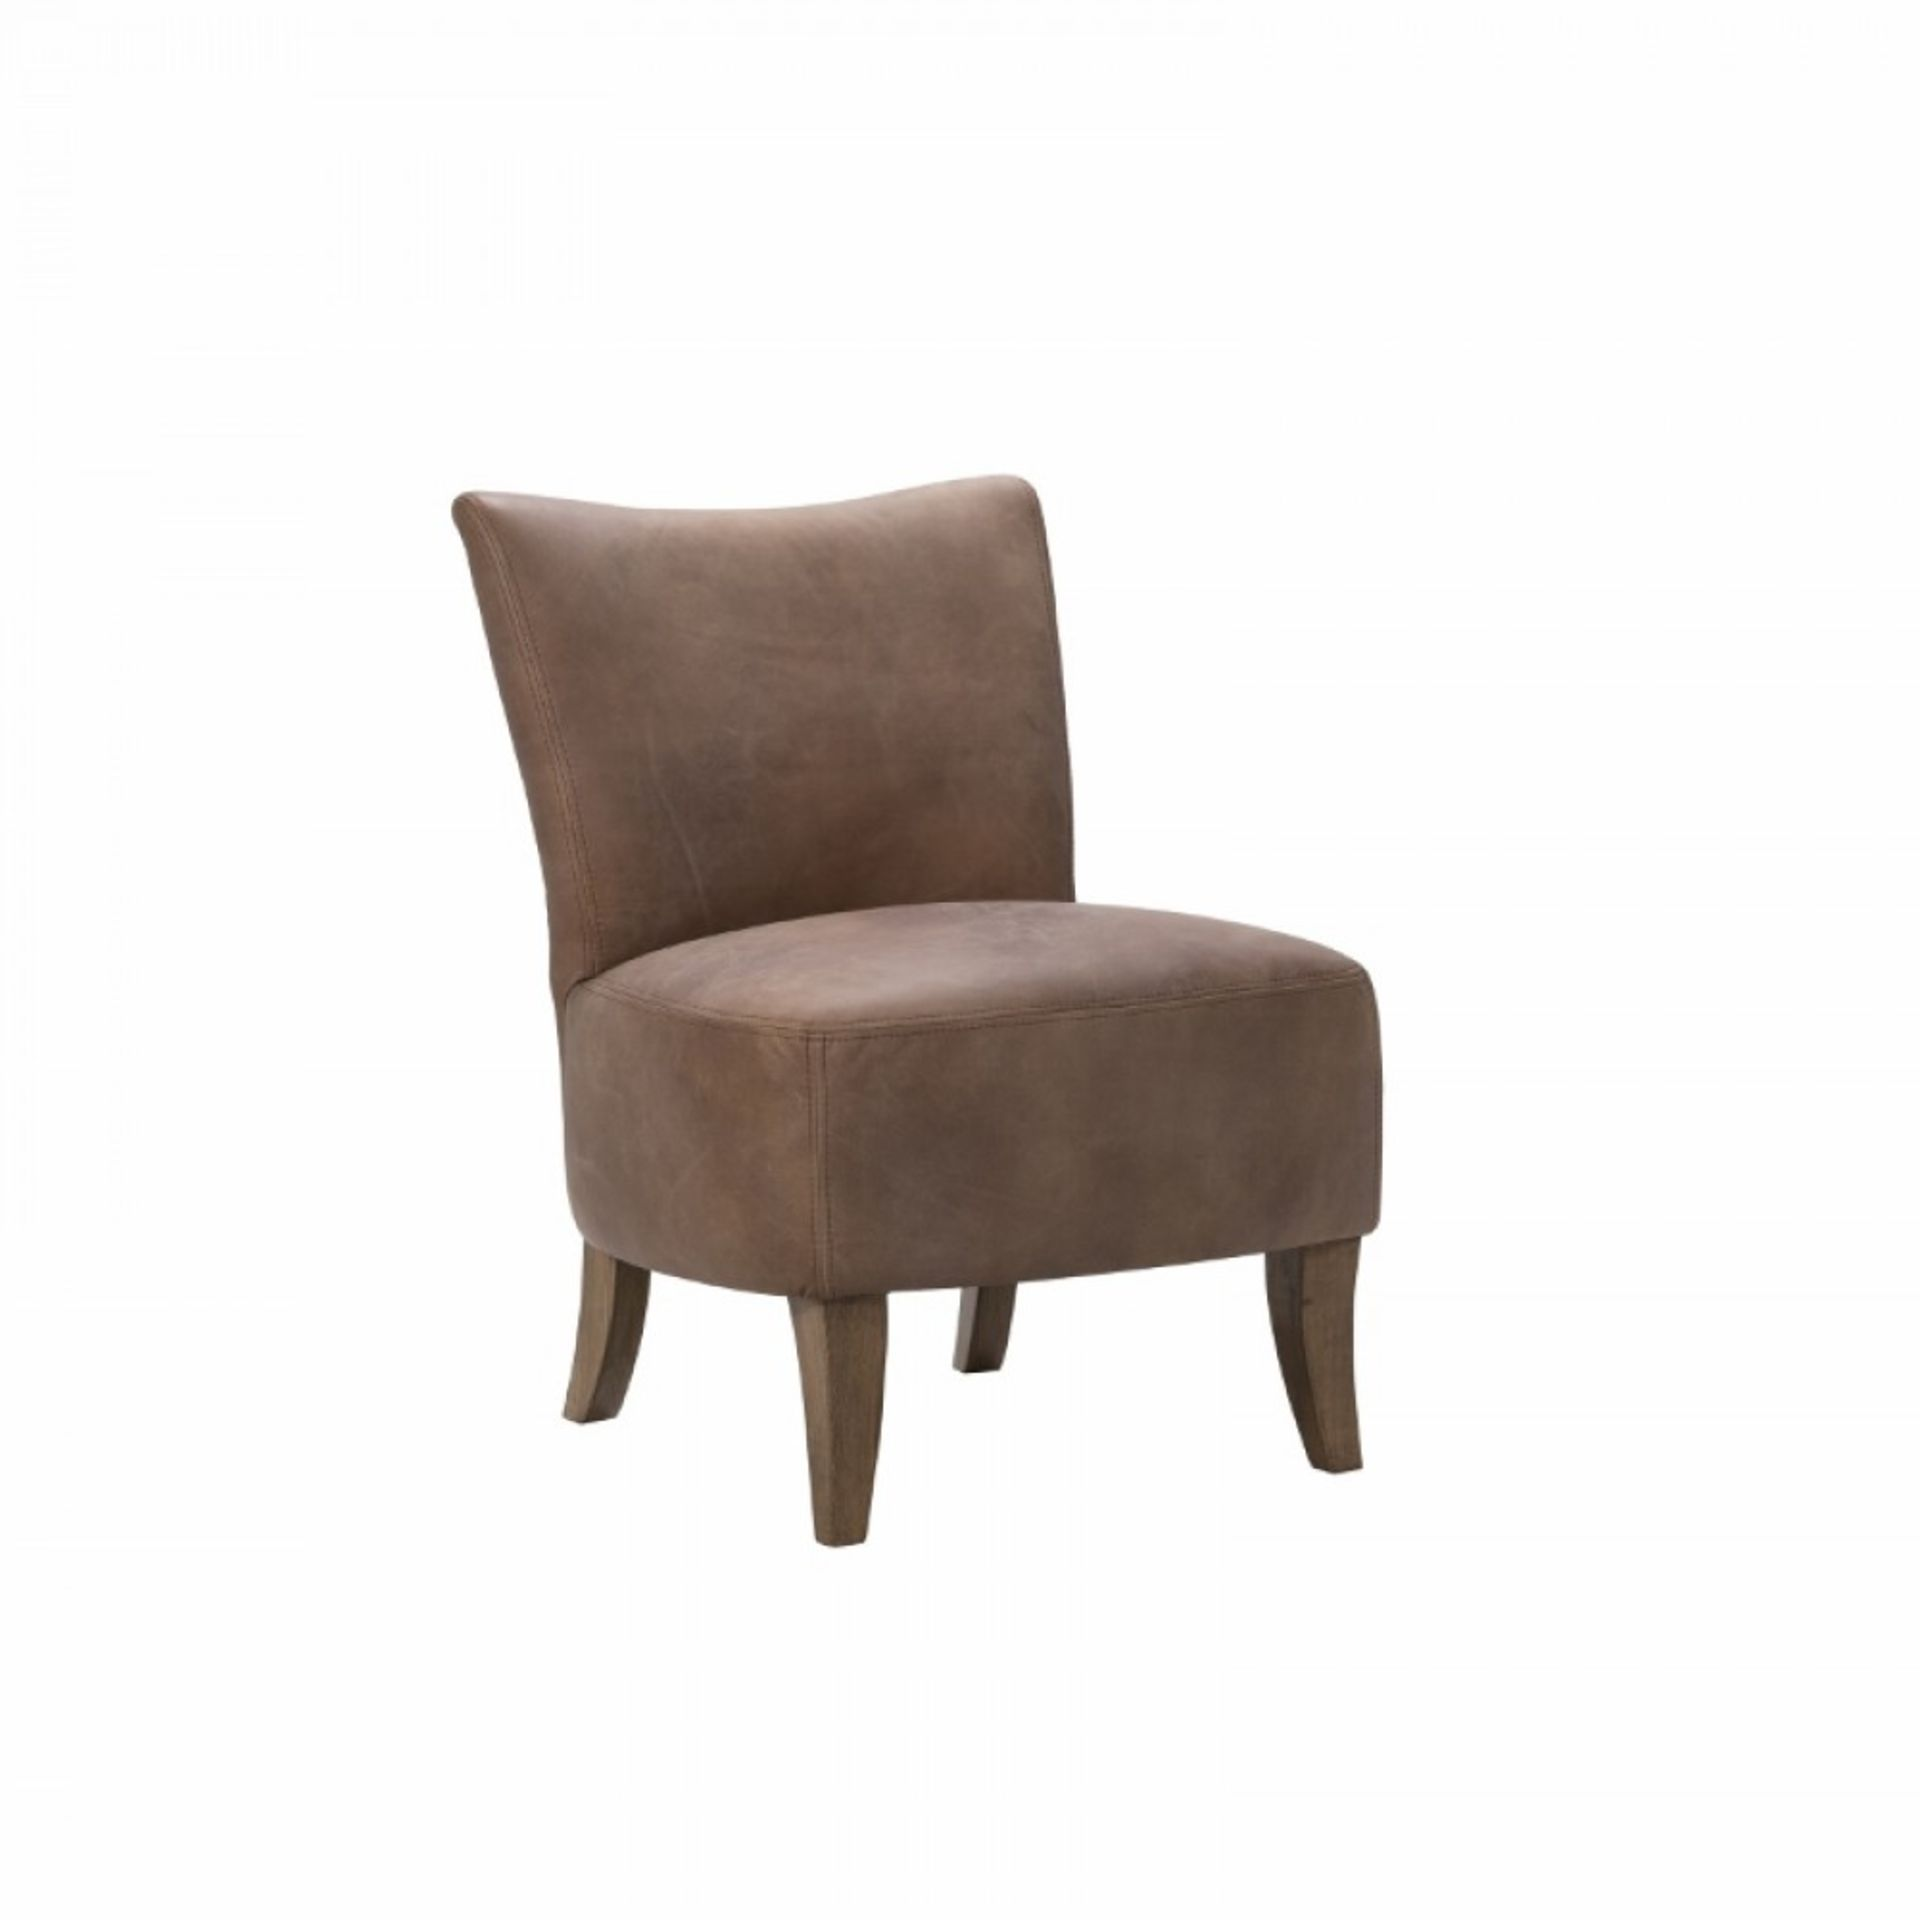 Lot 8 - Mere Armchair Black Leather The Mere Chair Is A Compact, Simple Slipper Chair Featuring Curved